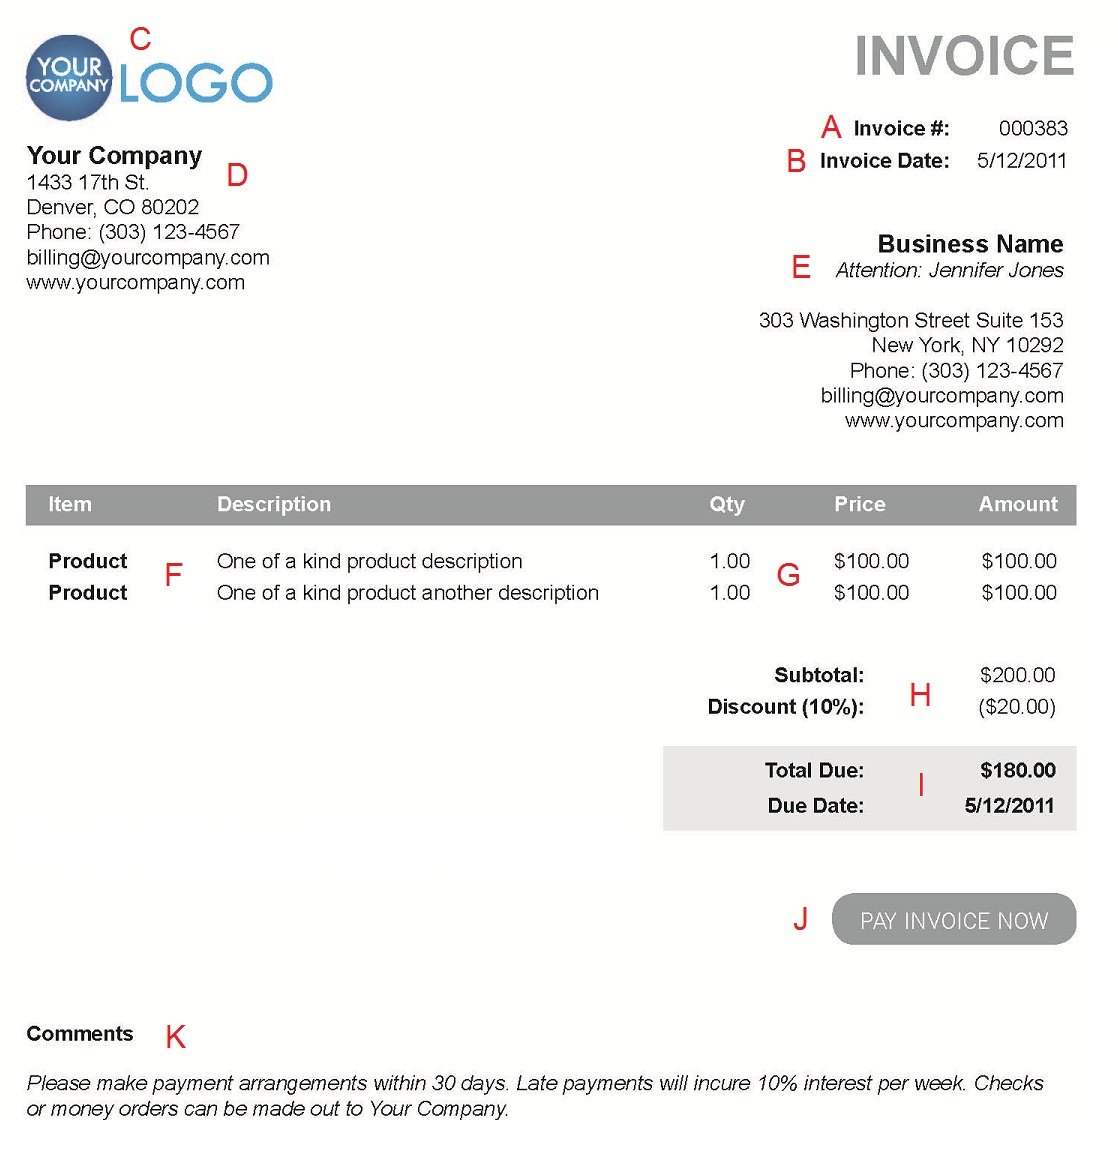 Usdgus  Stunning The  Different Sections Of An Electronic Payment Invoice With Marvelous A  With Cute Factory Invoice Vs Dealer Invoice Also Monthly Rent Invoice Template In Addition Templates For Billing Invoice And New Car Factory Invoice As Well As How To Send An Invoice For Freelance Work Additionally Invoice Template For Designers From Paysimplecom With Usdgus  Marvelous The  Different Sections Of An Electronic Payment Invoice With Cute A  And Stunning Factory Invoice Vs Dealer Invoice Also Monthly Rent Invoice Template In Addition Templates For Billing Invoice From Paysimplecom